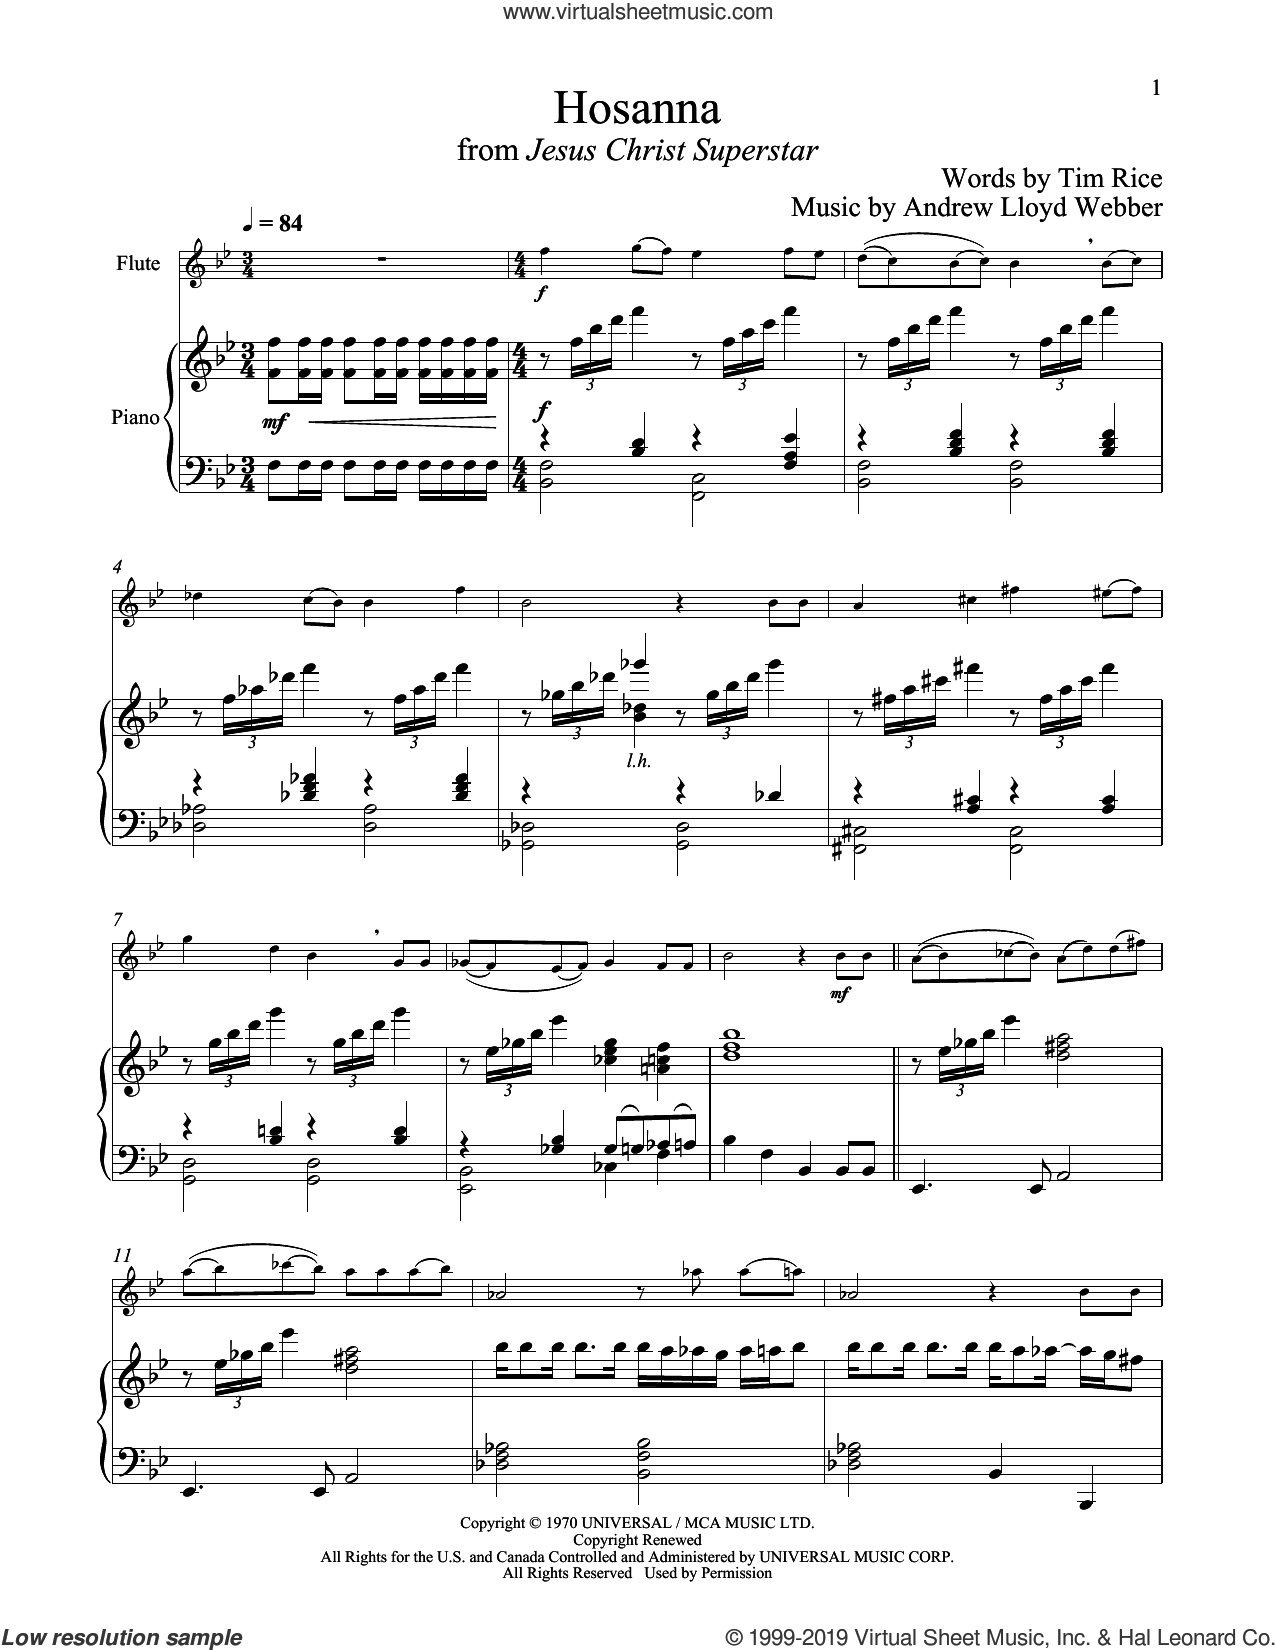 Hosanna (from Jesus Christ Superstar) sheet music for flute and piano by Andrew Lloyd Webber and Tim Rice, intermediate skill level